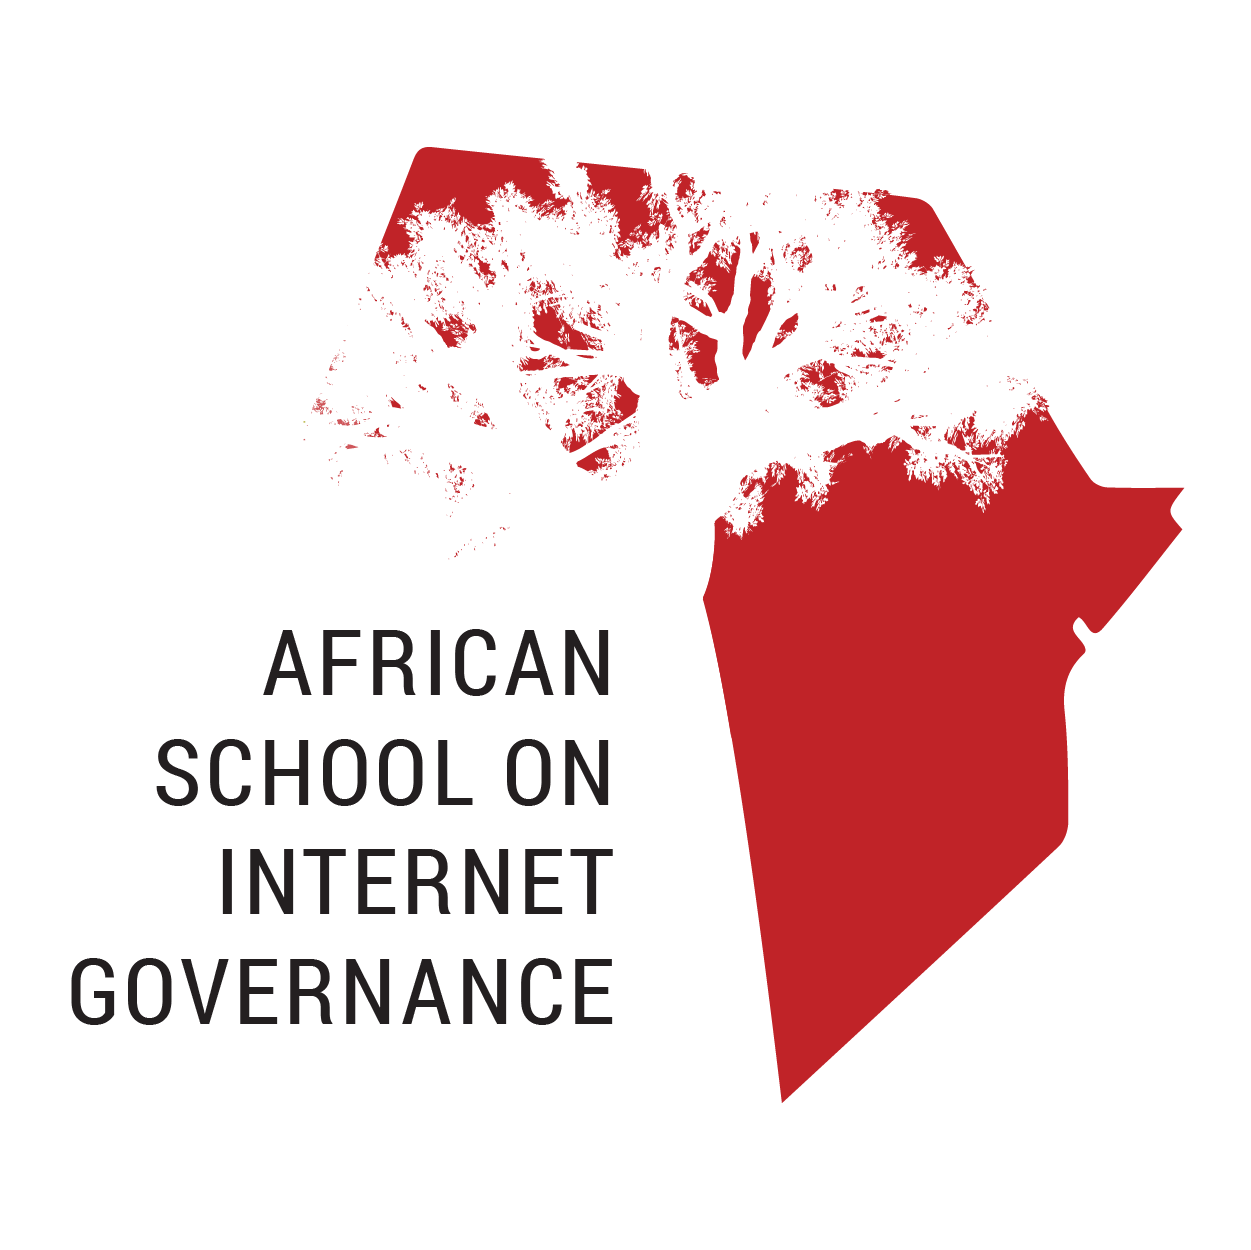 African School on Internet Governance